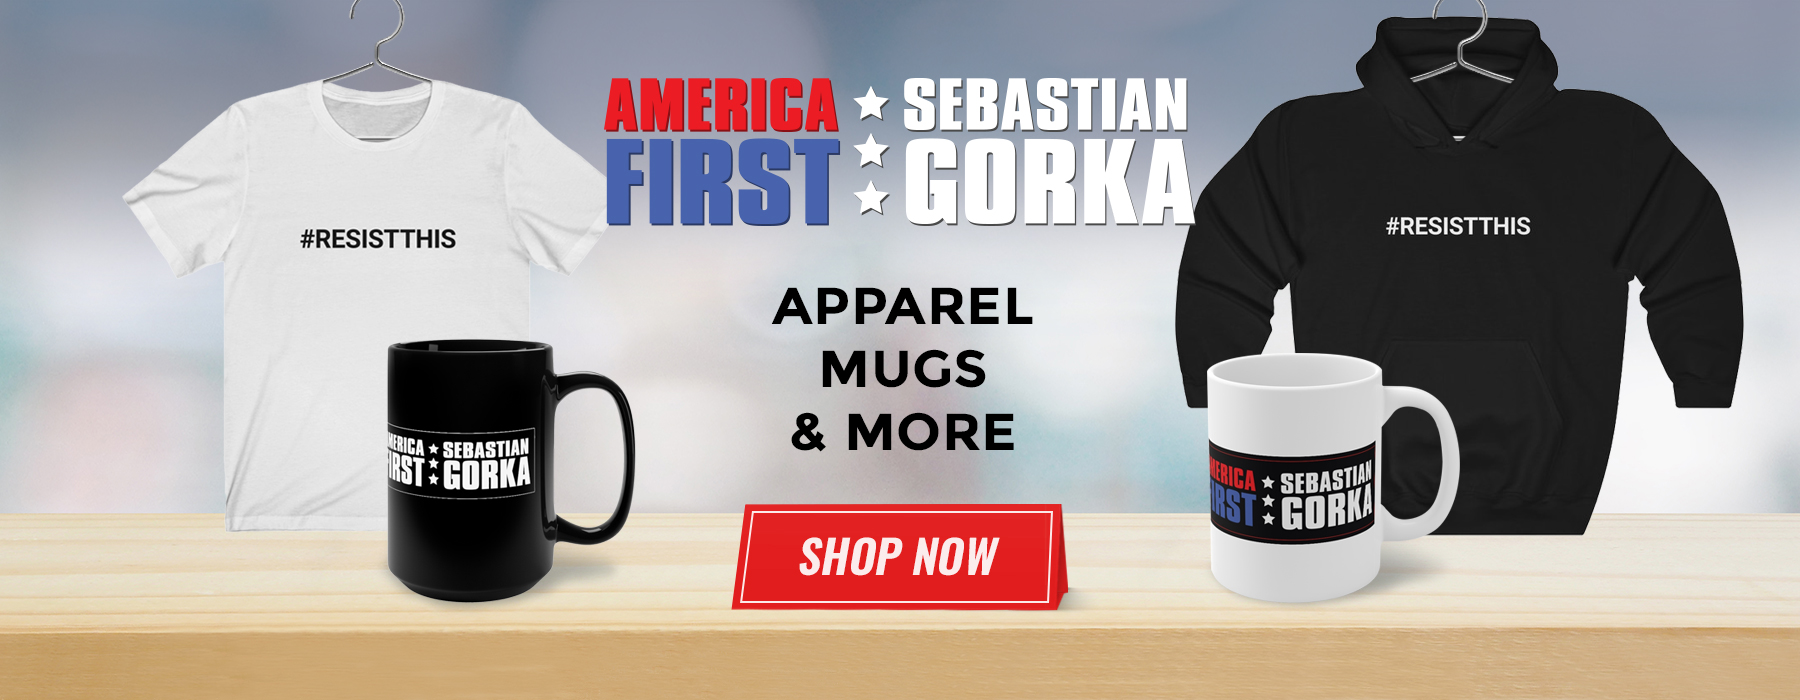 Apparel, Mugs and More - Shop Now